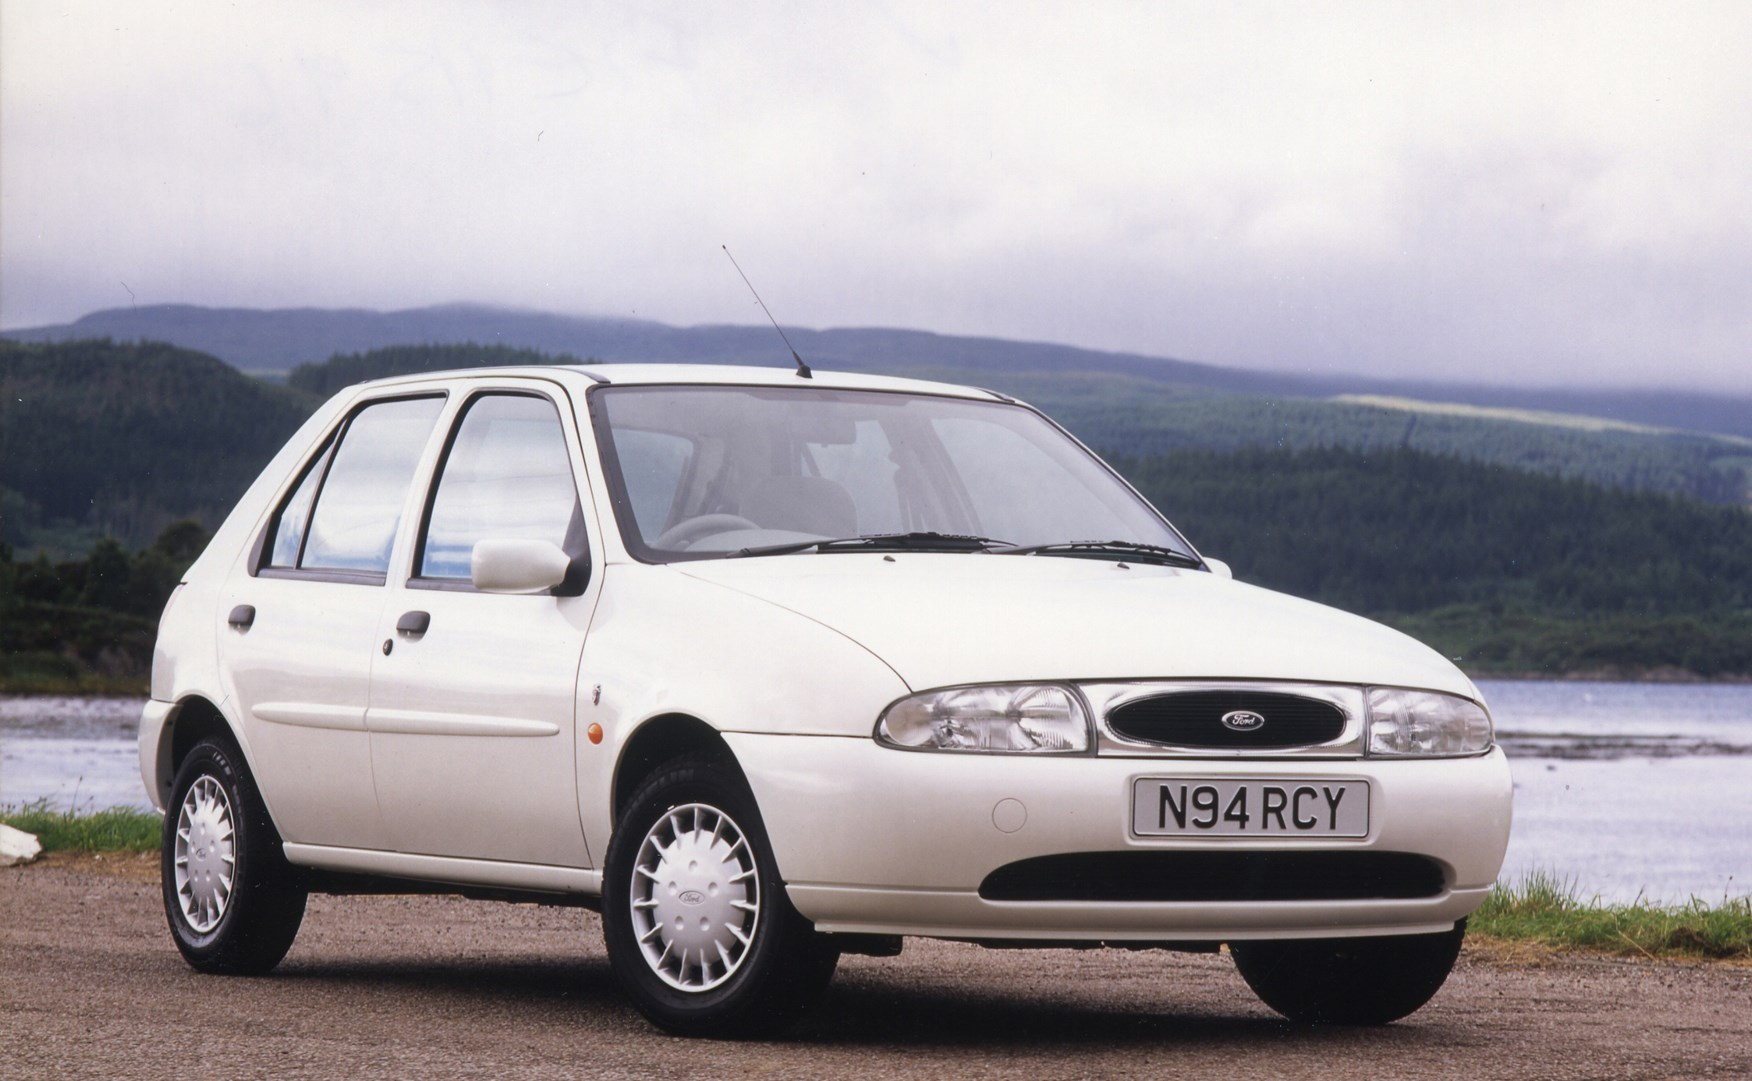 Ford Fiesta Hatchback (1995 - 1999) Photos | Parkers